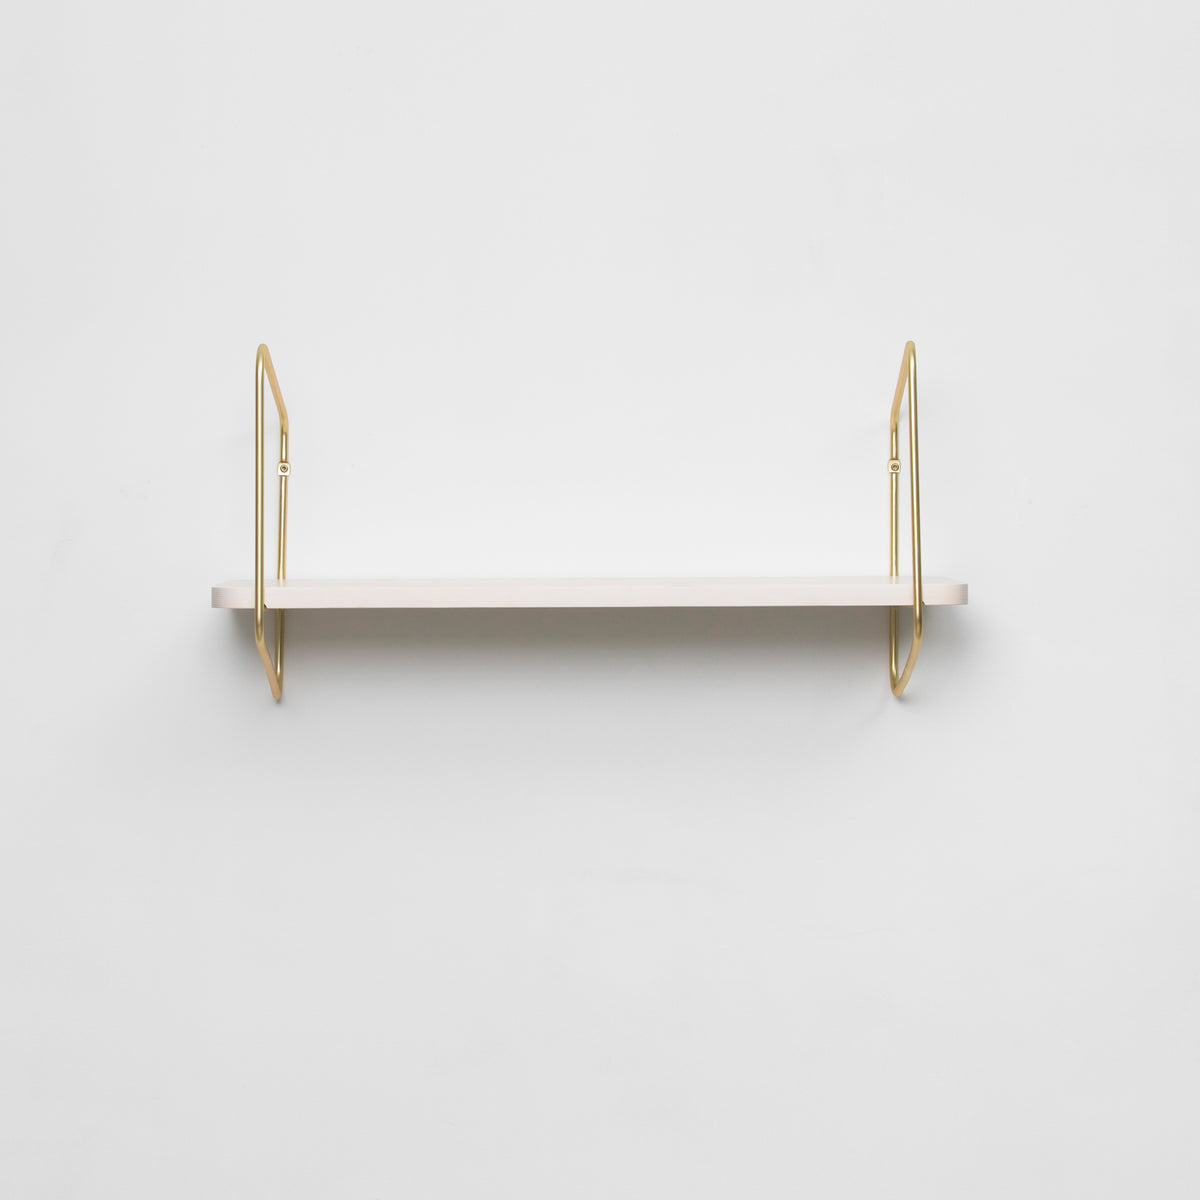 Urban Nomad Wall Shelf / 68x24 cm / Gold / White